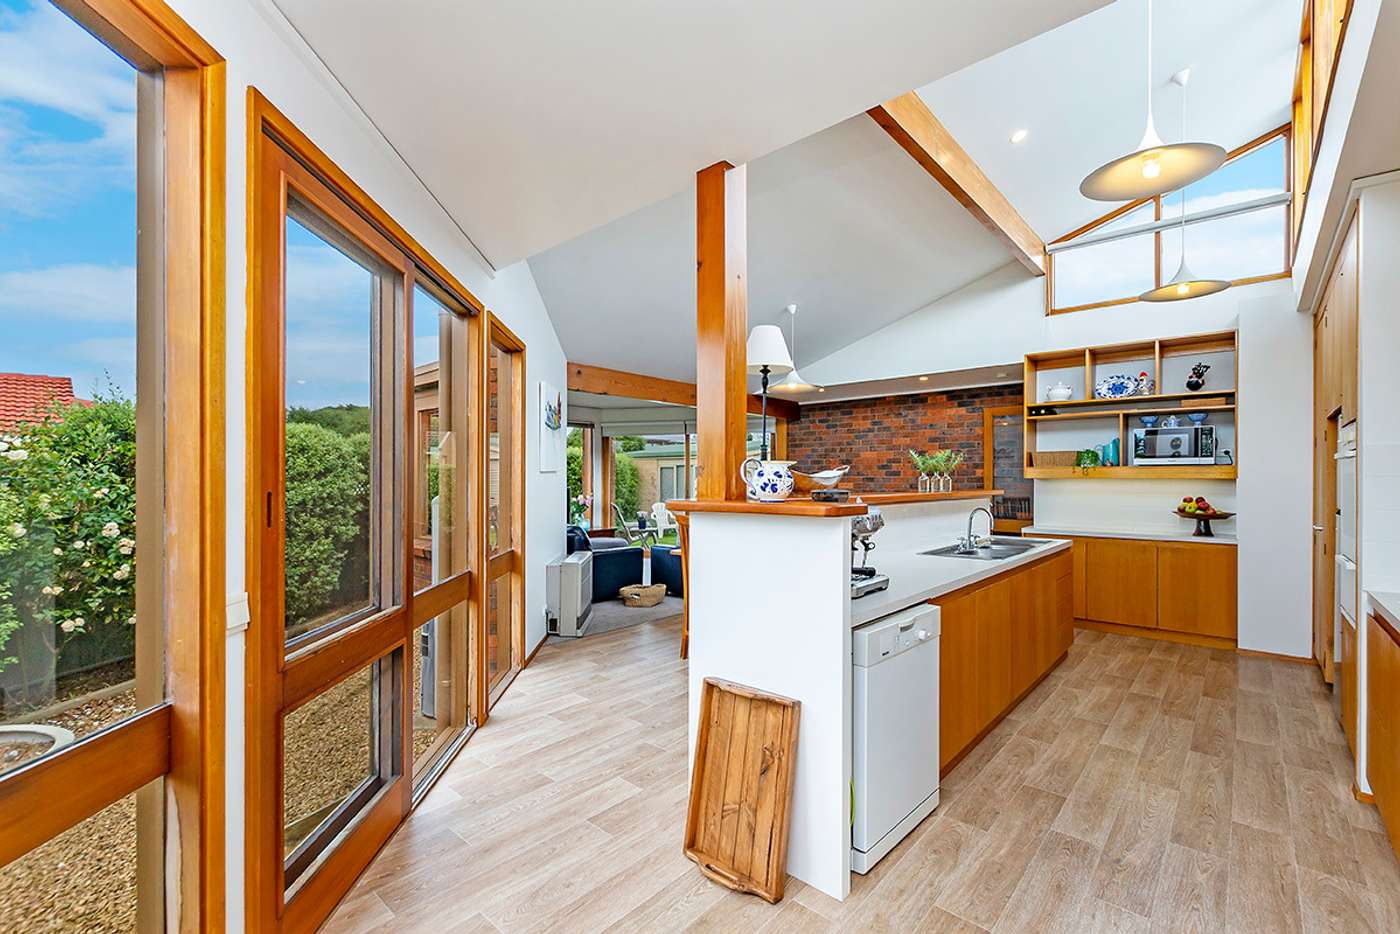 Fifth view of Homely house listing, 1 Balmoral Street, Portland VIC 3305